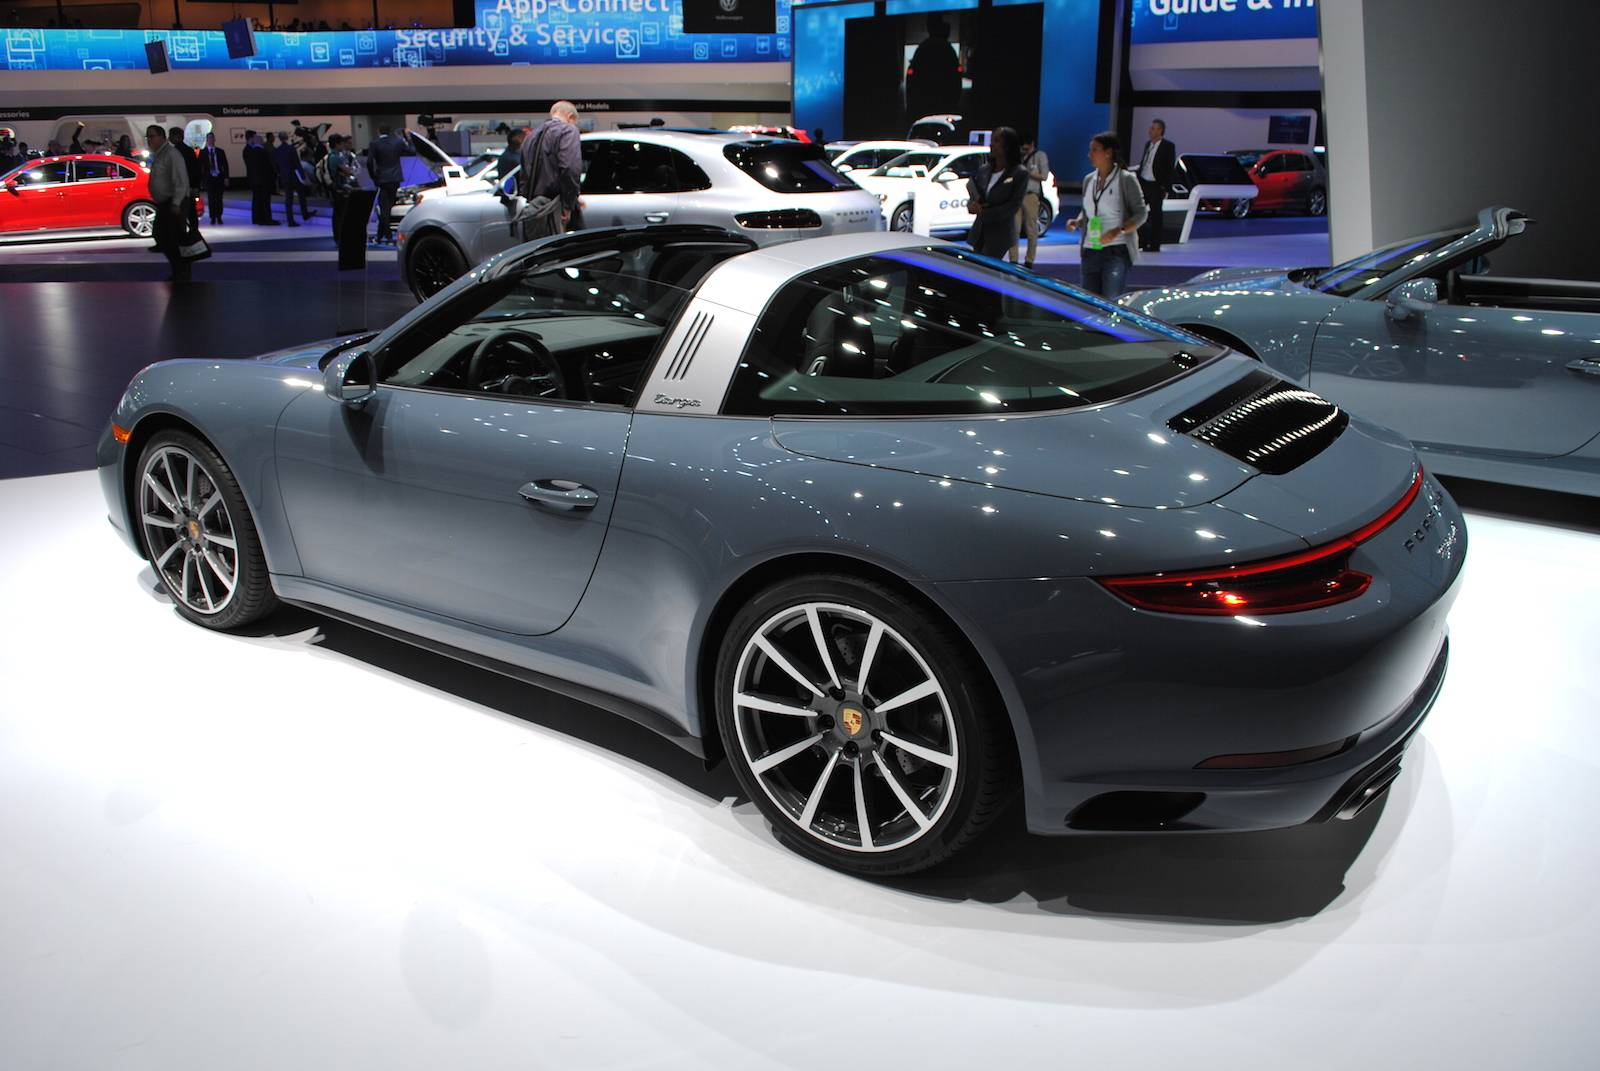 Audi E Tron Quattro Concept Is A Tesla Rival In Sexy Suv Form Live Photos 99919 also Gallery Modified Ford Mustangs Charge Into Sema 2017 besides Chevrolet Bel Air further Peugeot Rcz R Price And Specs together with Porsche 911 Turbo 964 1990. on porsche model 3